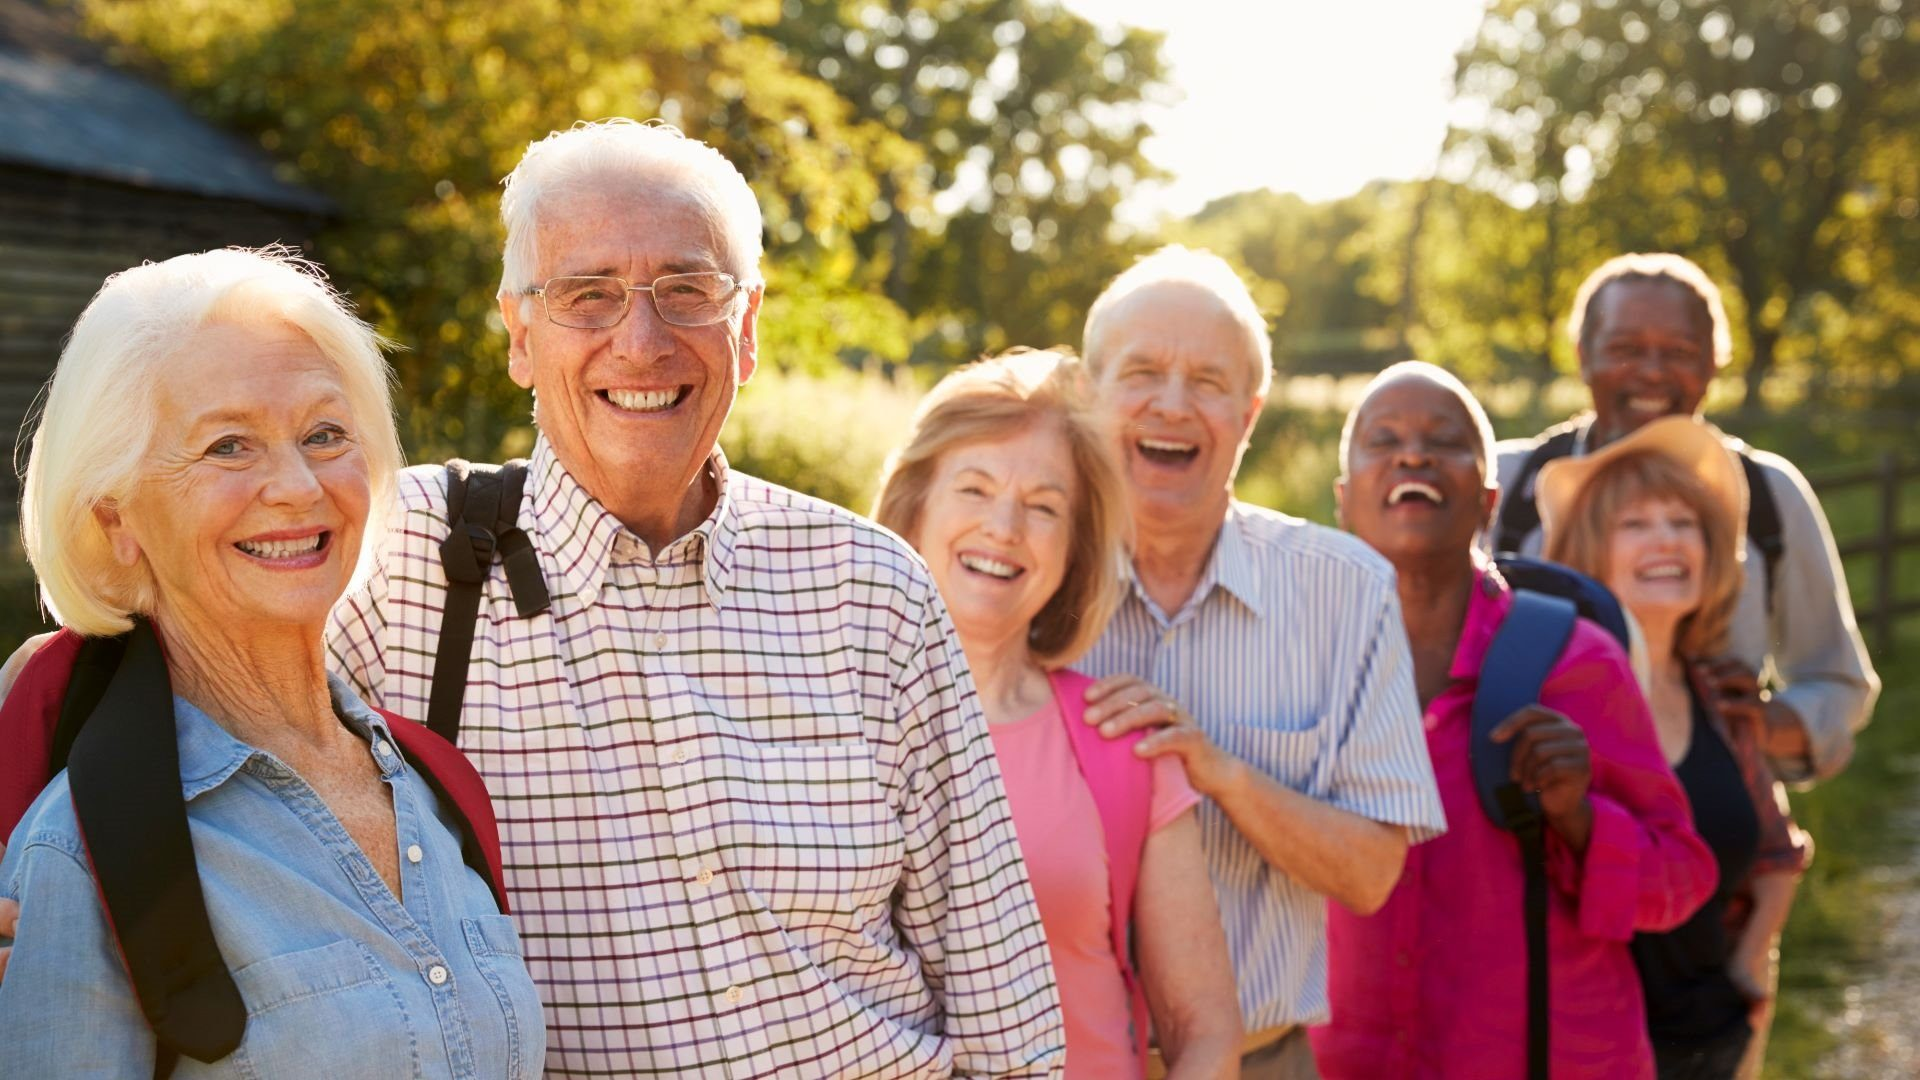 23593568-portrait-of-senior-friends-hiking-in-countryside_1920_1080